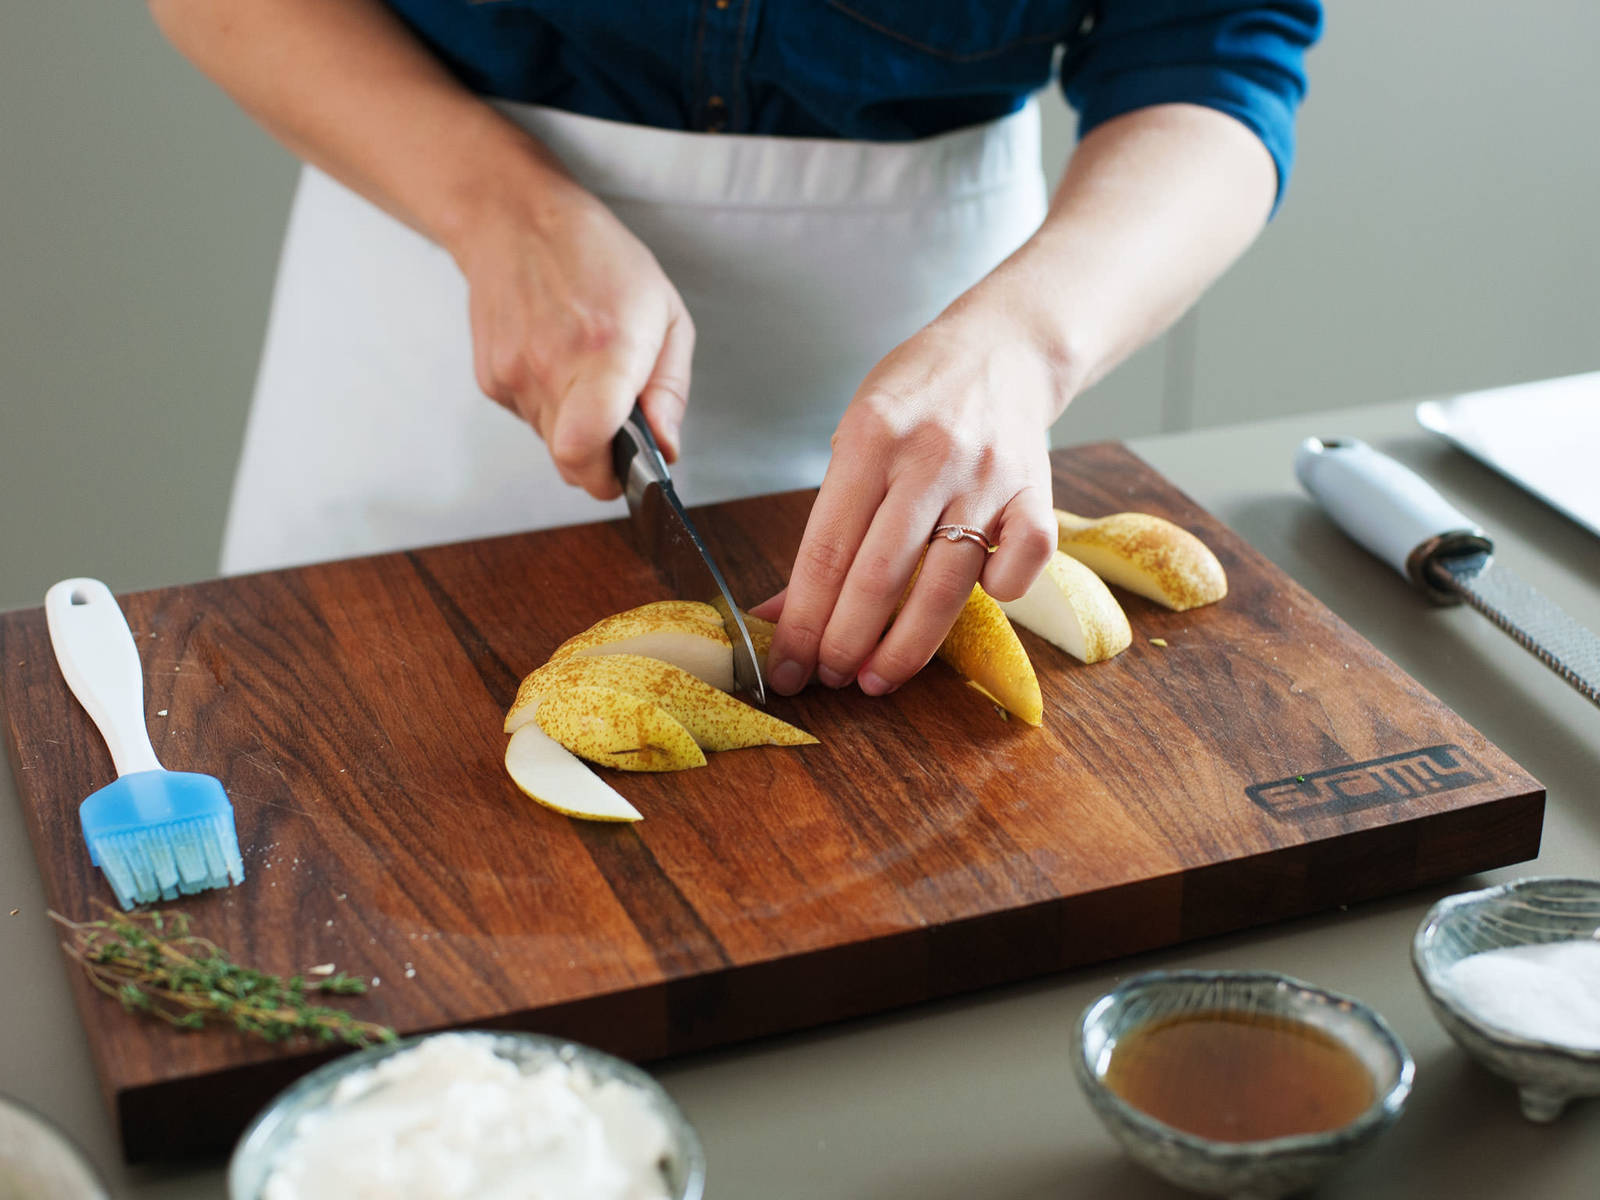 Increase oven temperature to 220°C/425°F. Slice pears and arrange on parchment-lined baking sheet.